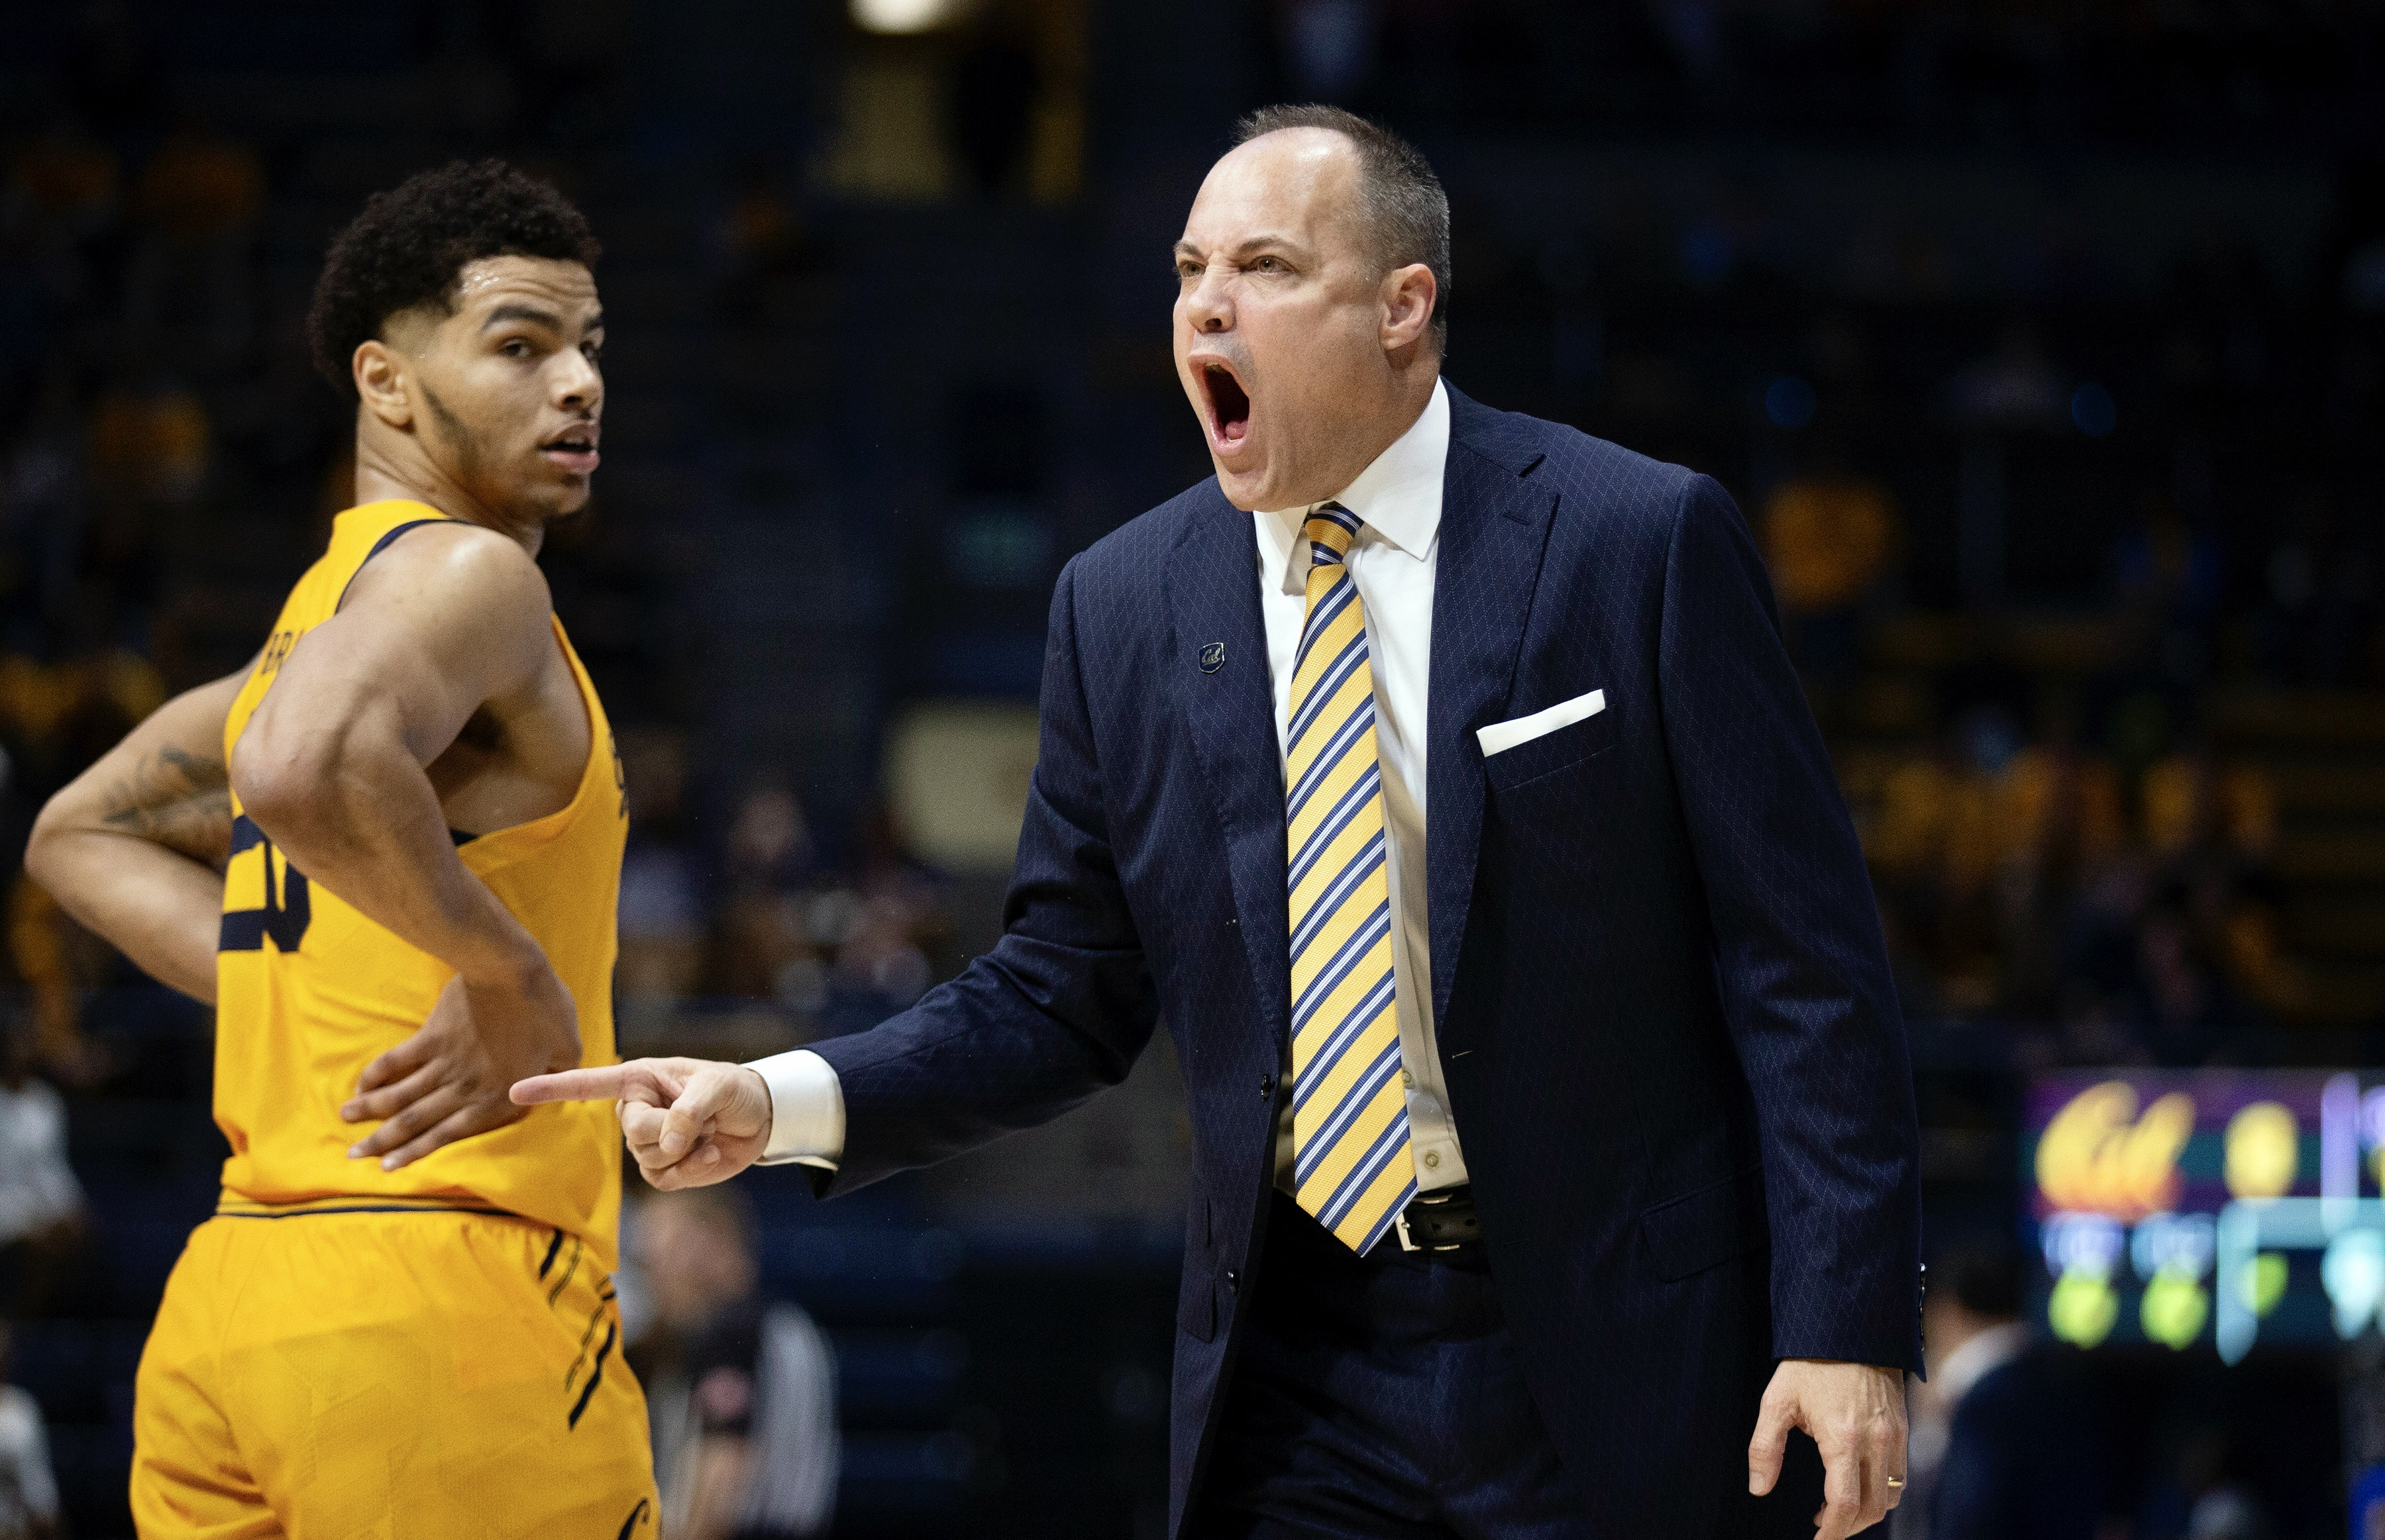 Cal Basketball: Bears Can't Find Enough Offense in 68-52 Loss to Arizona